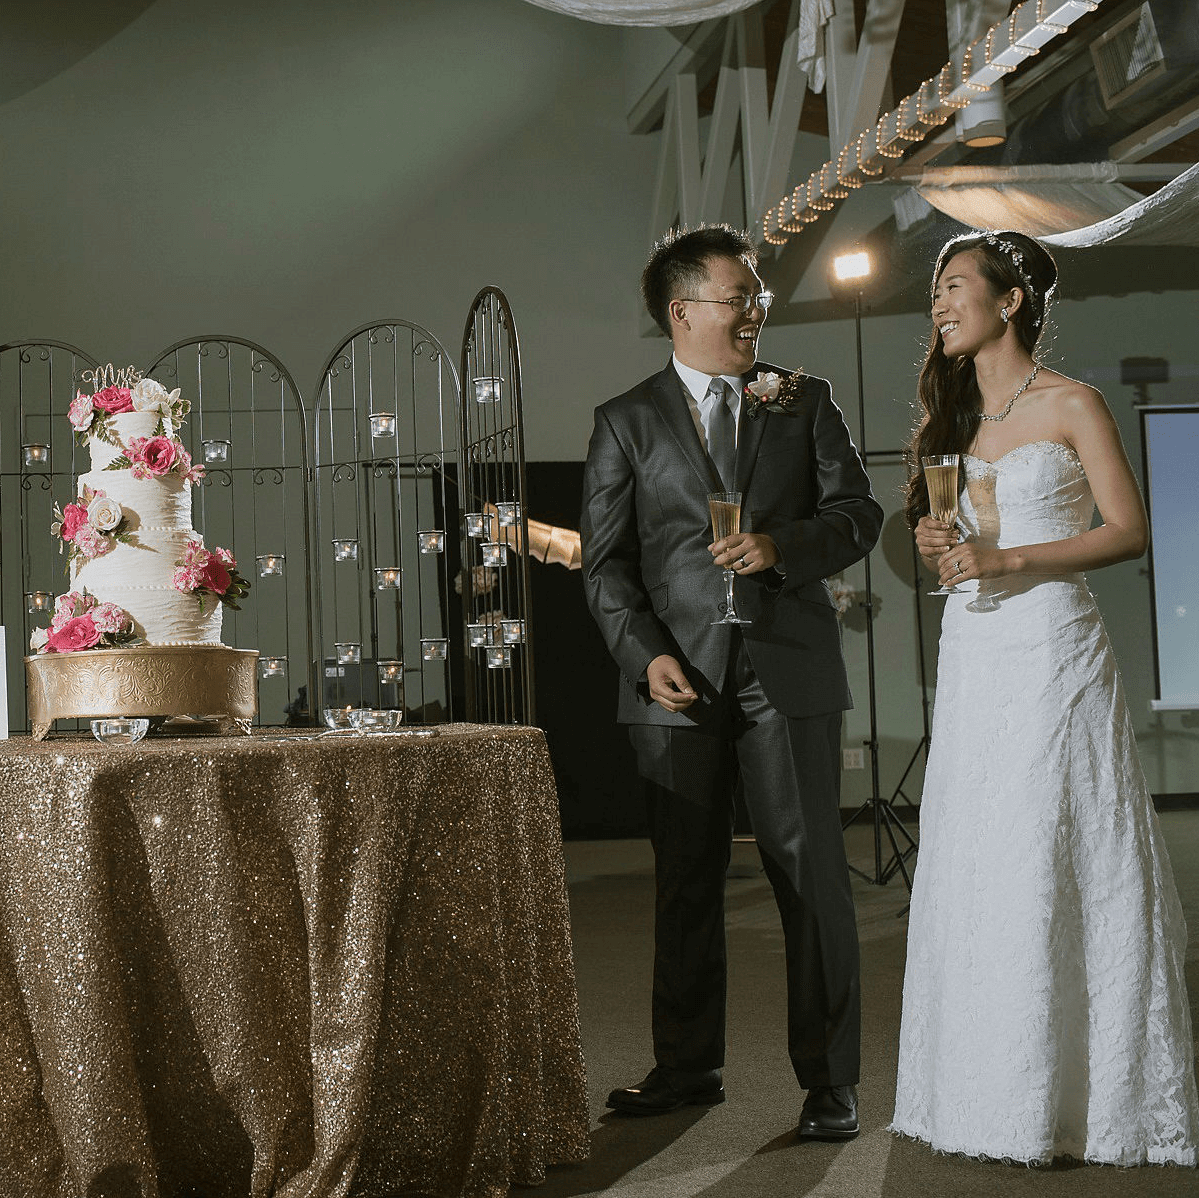 Details of Sonya + Jimmy's Dripping Springs Wedding